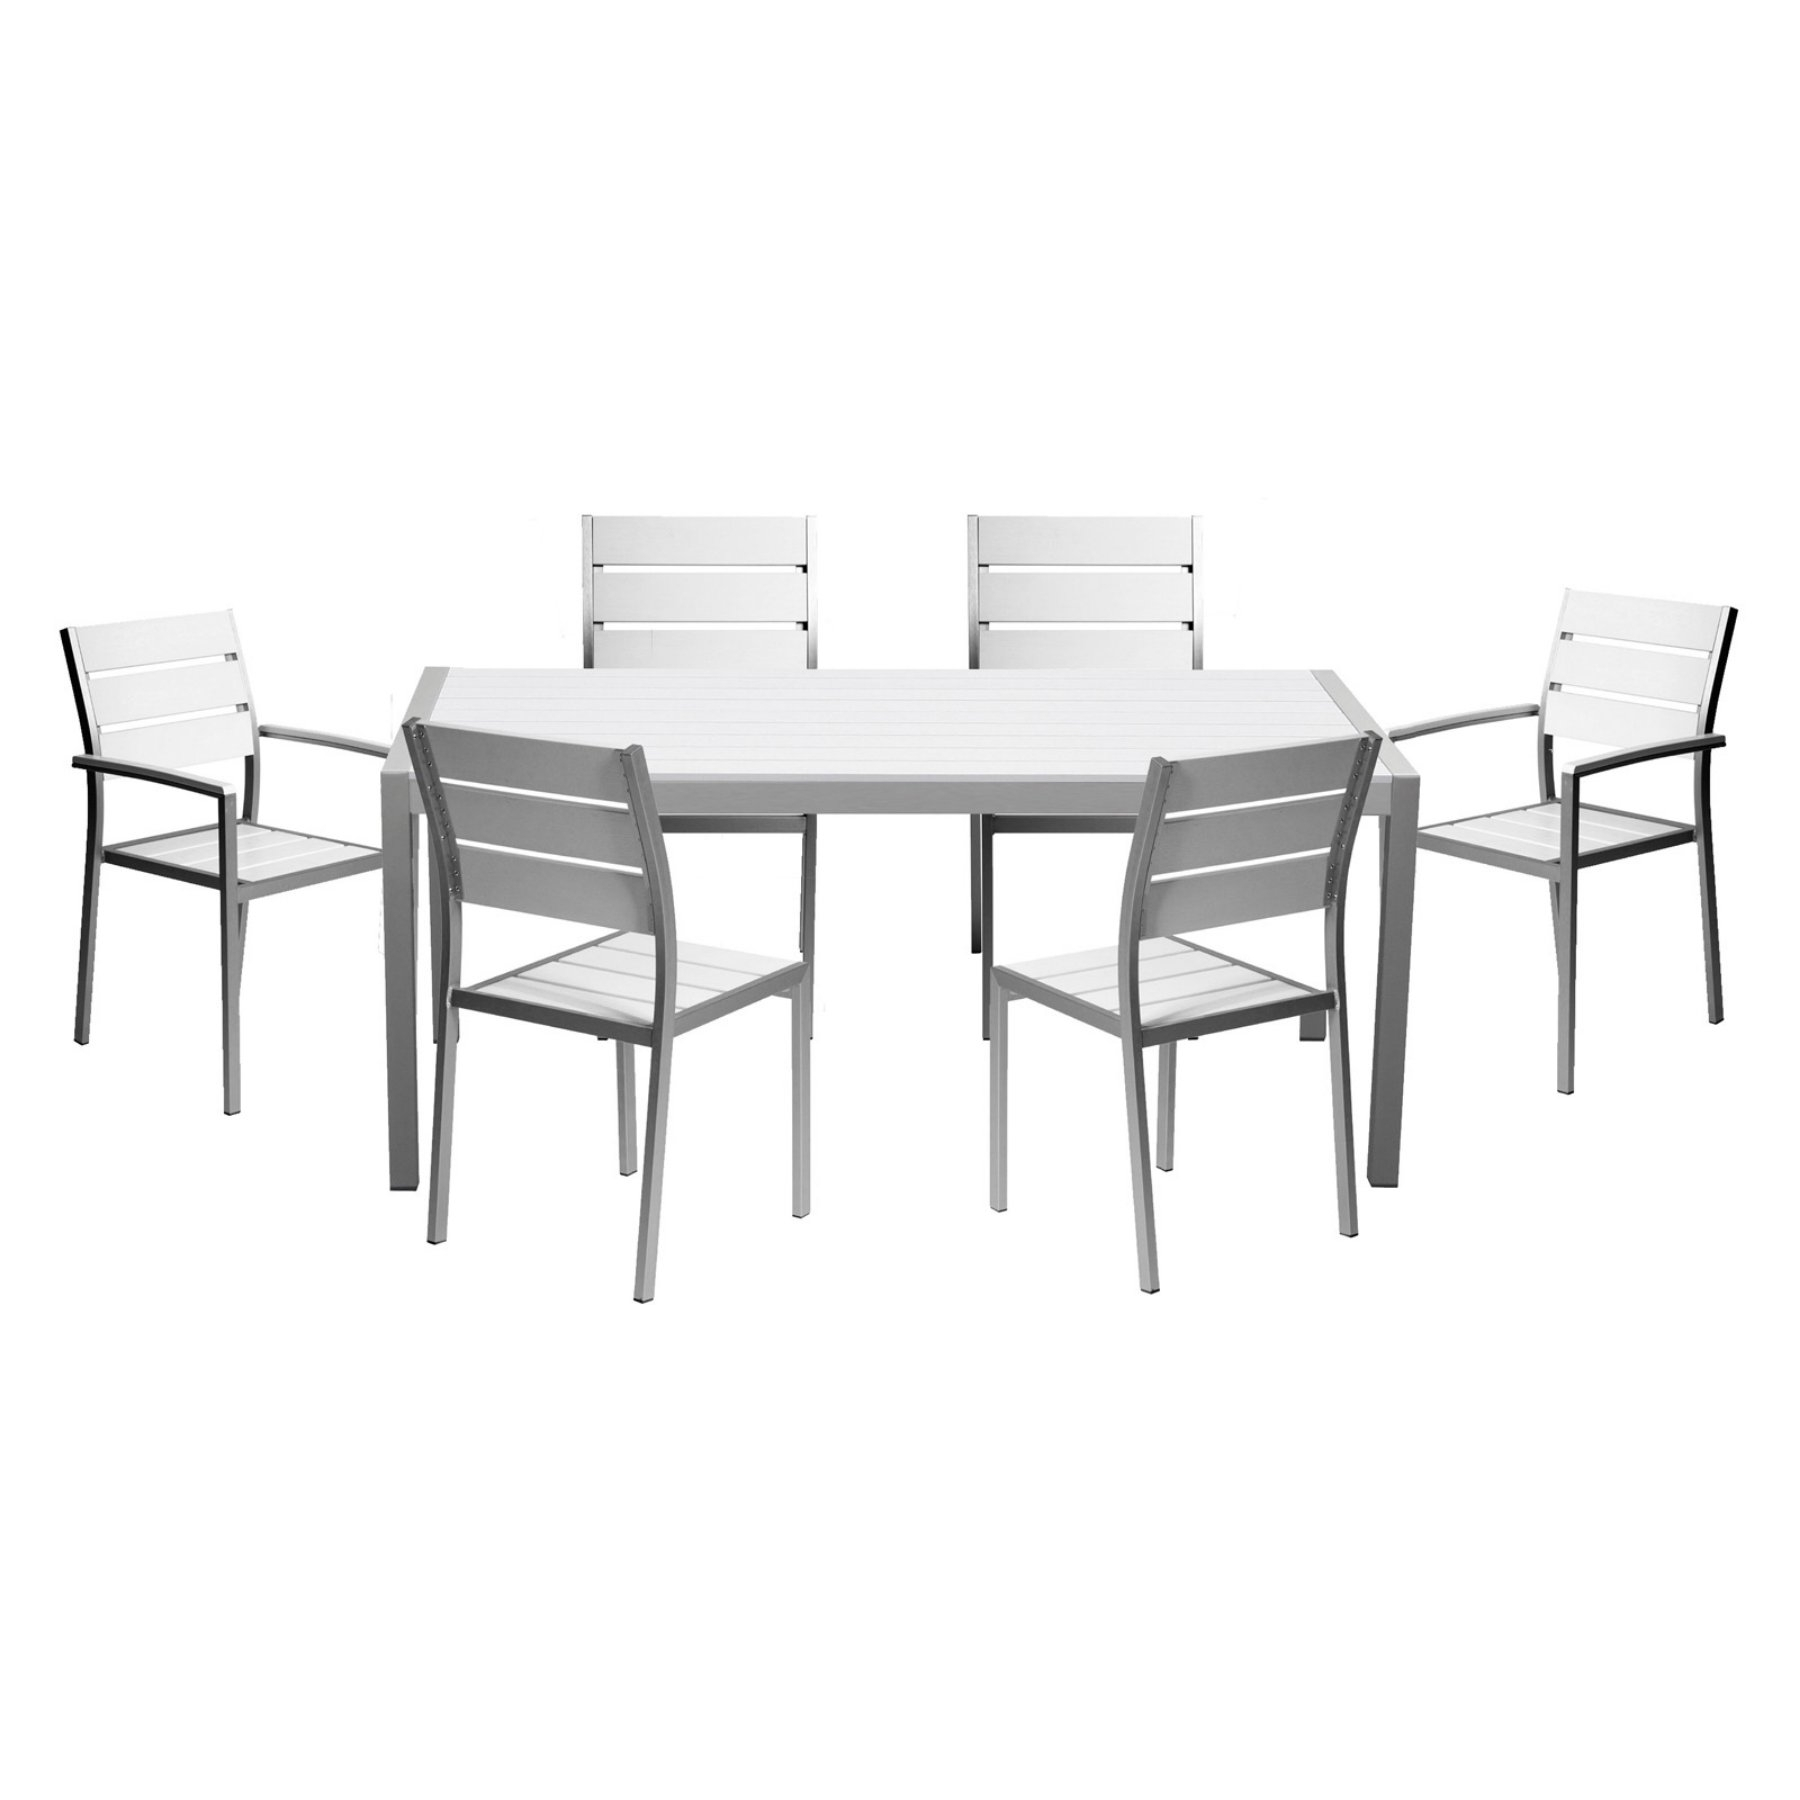 Pangea Outdoor Roy Aluminum 7 Piece Patio Dining Set In 2018 Intended For Preferred Market 7 Piece Dining Sets With Host And Side Chairs (View 22 of 25)